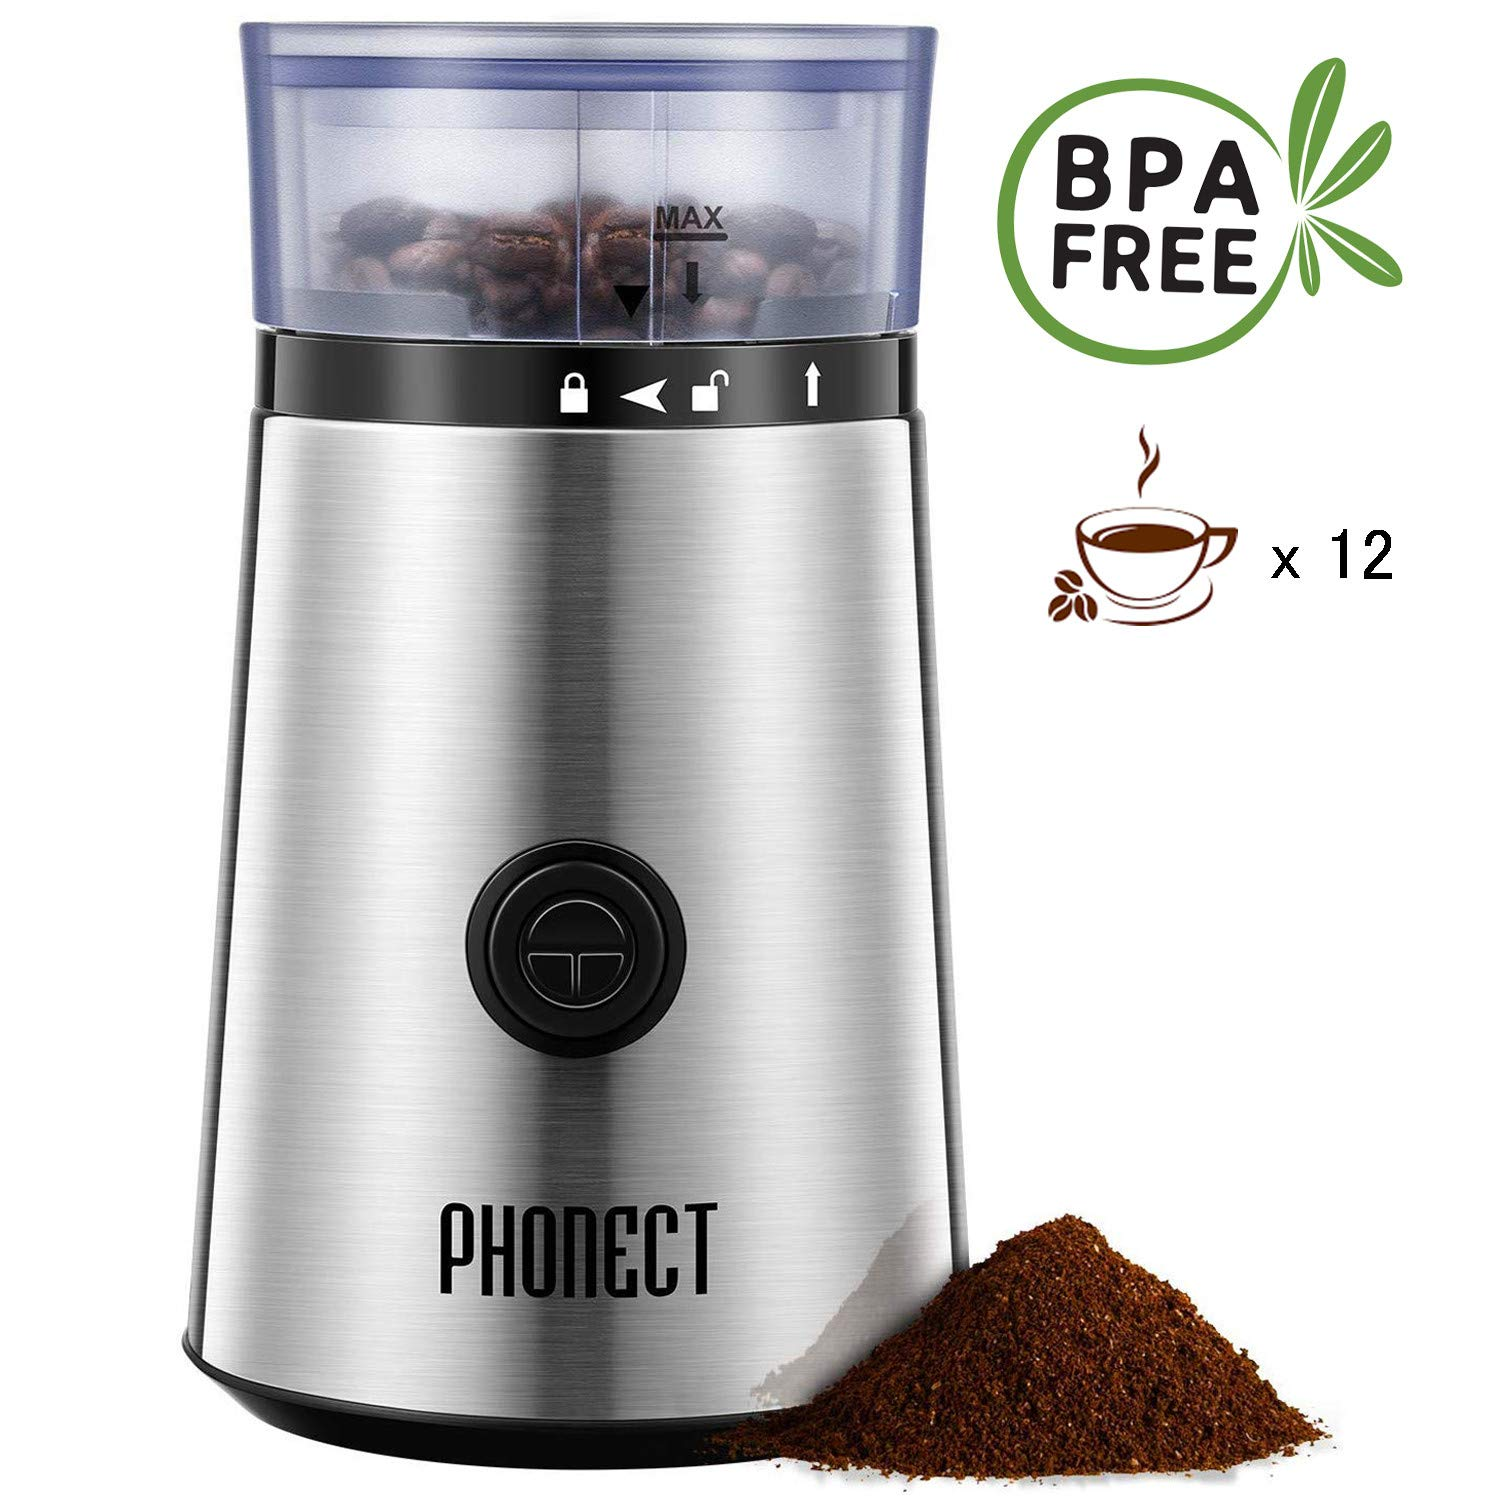 Coffee Grinder Electric, 150W Blade Spice Grinder, Portable Stainless Steel Grinder, Removable Easy Clean Bowl Grinder also for Seeds Grains Nuts, 12 Cups by PHONECT